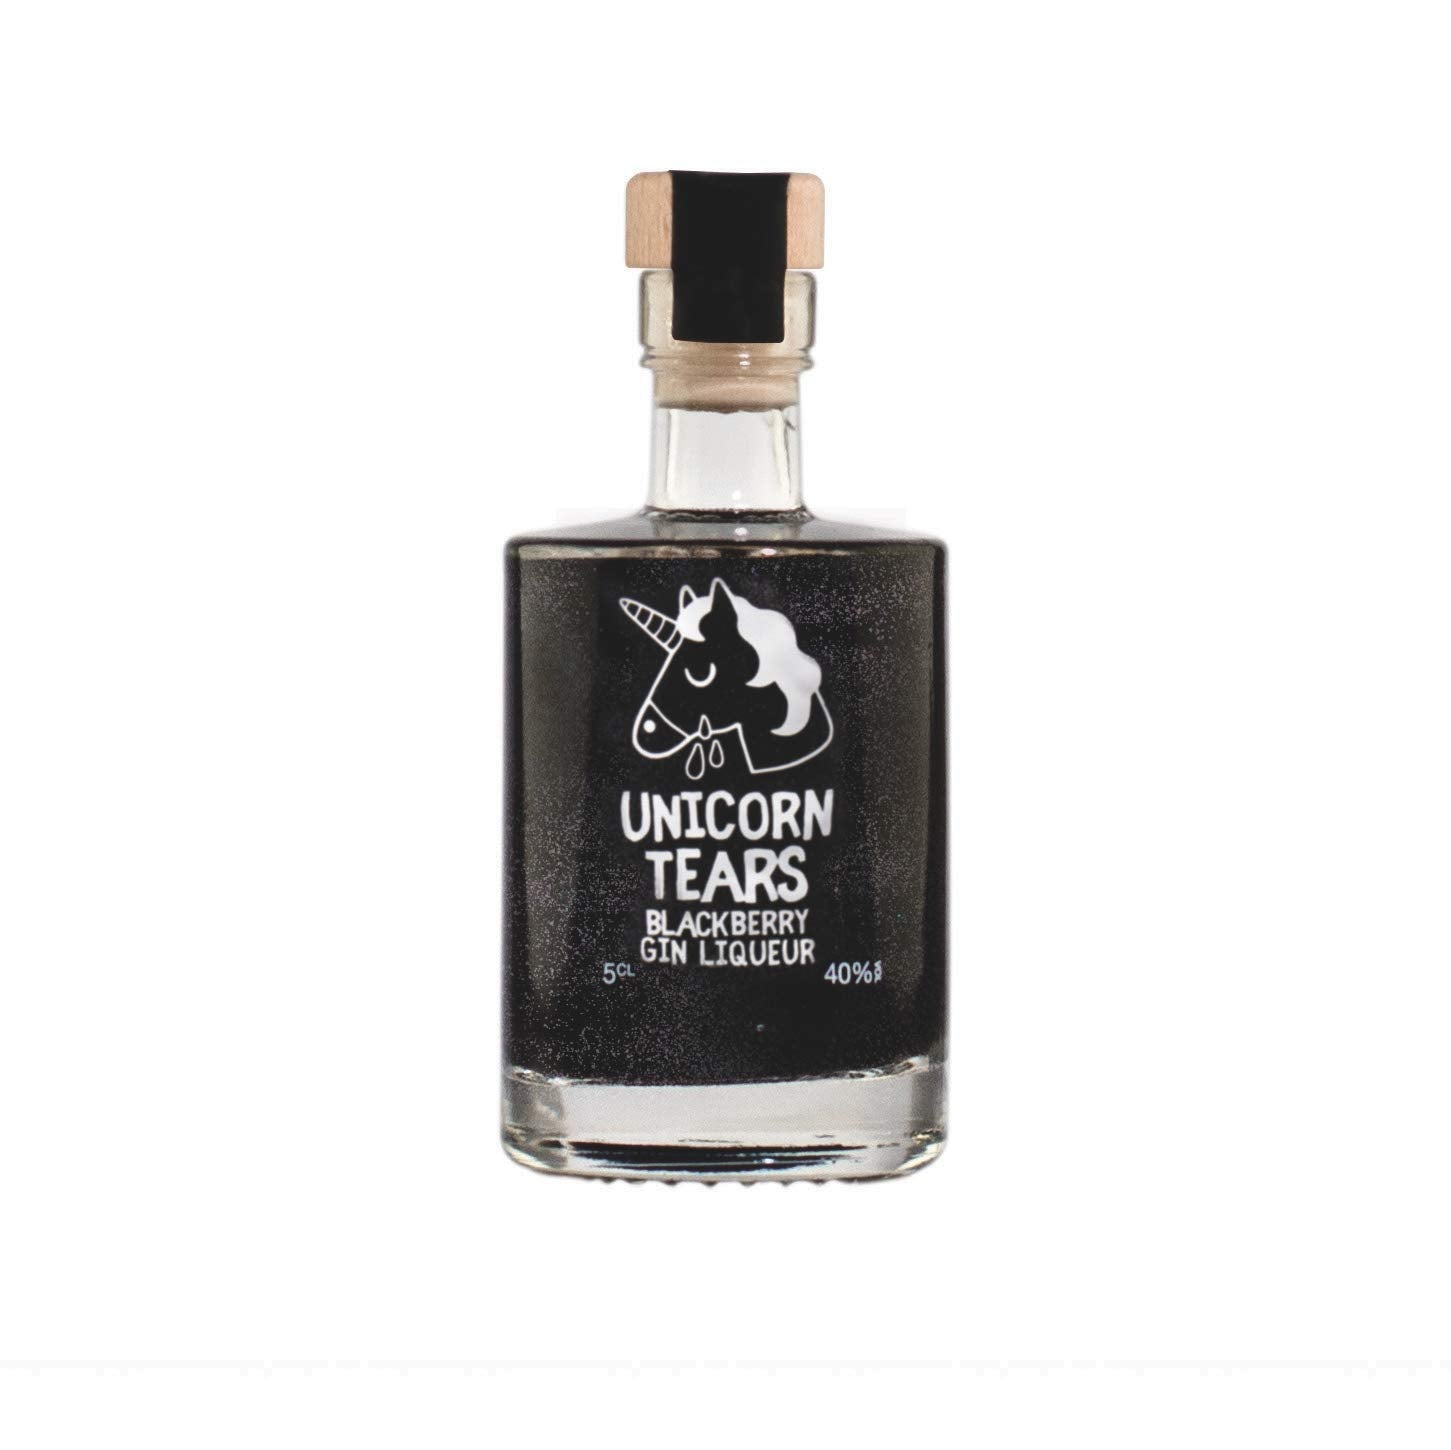 Unicorn Tears Gin - Blackberry Flavour (Miniature)